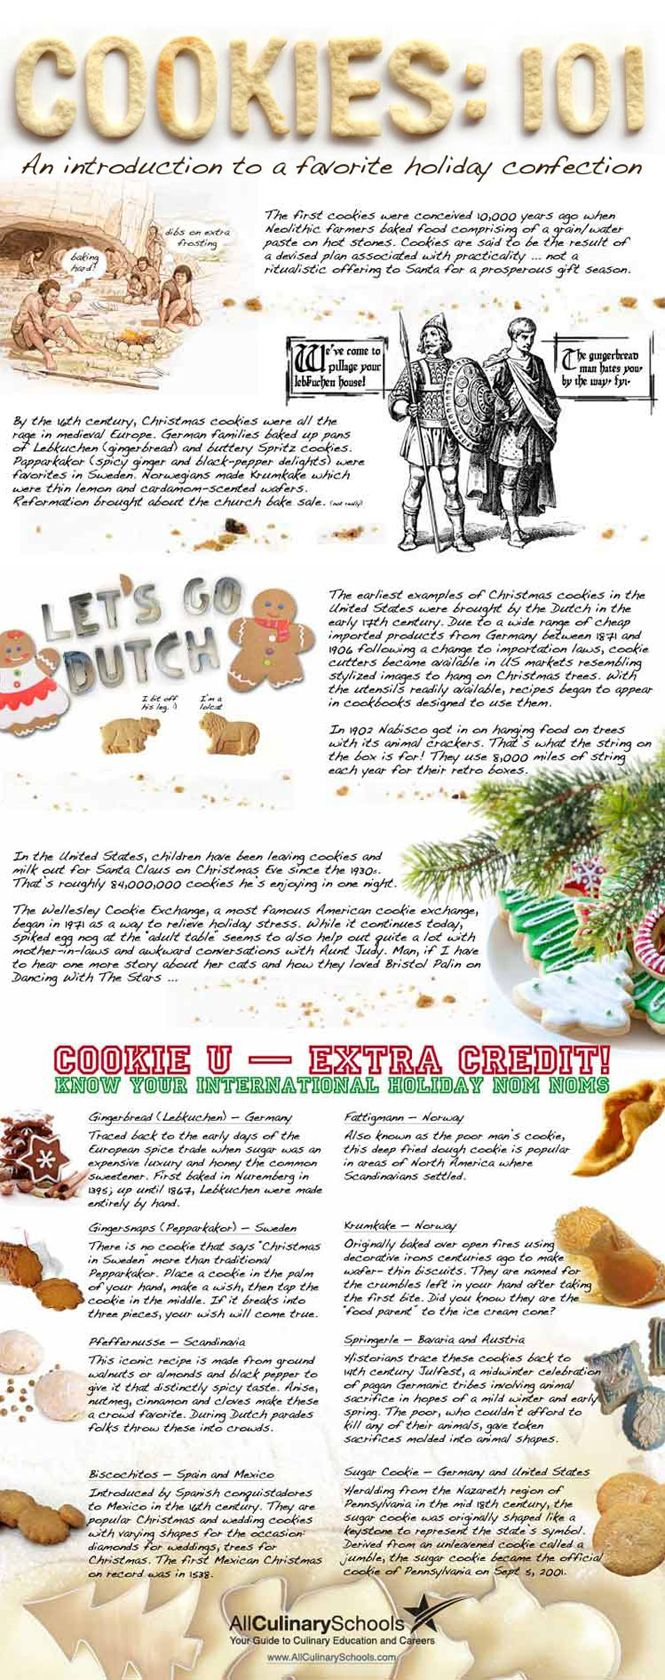 Fun facts about Christmas cookie recipes